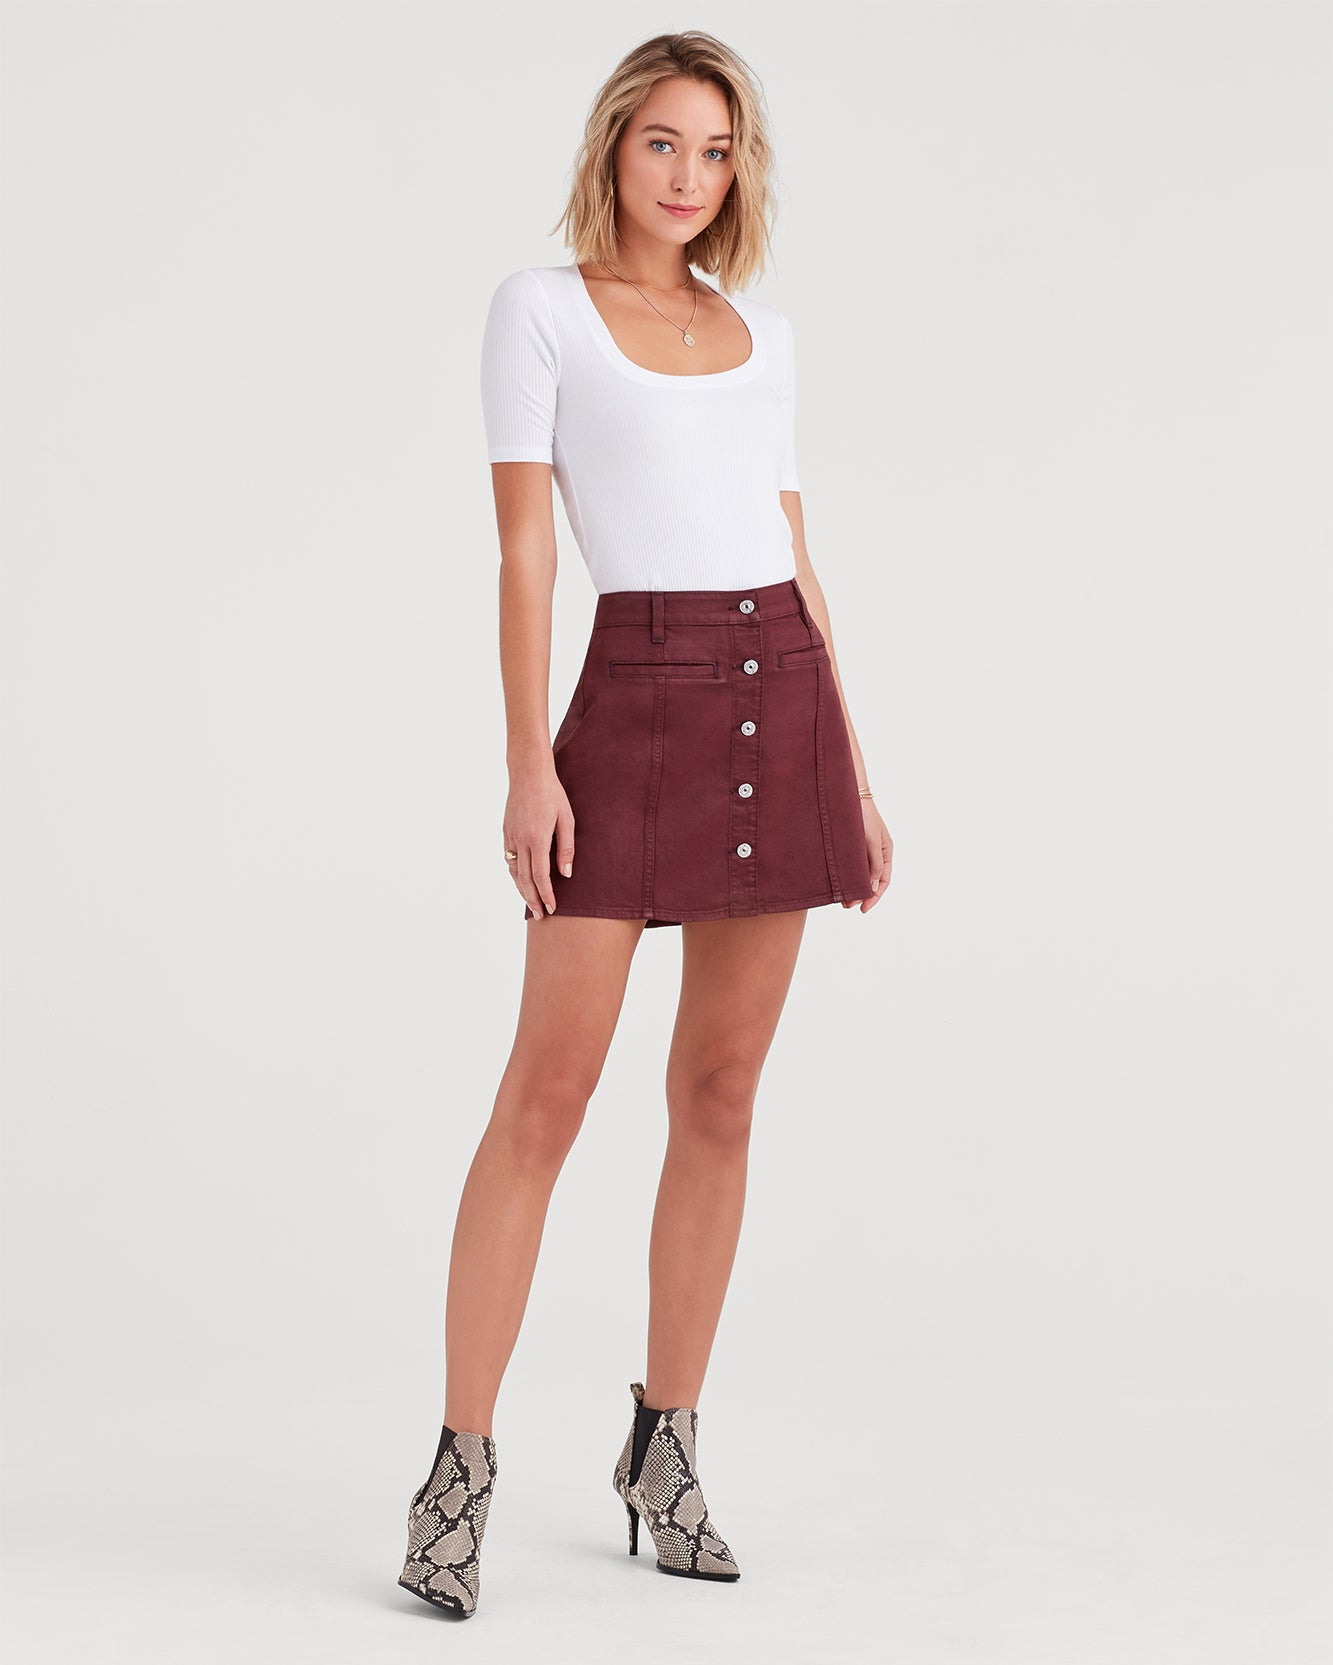 Image of Button Front Mini Skirt in Bordeaux